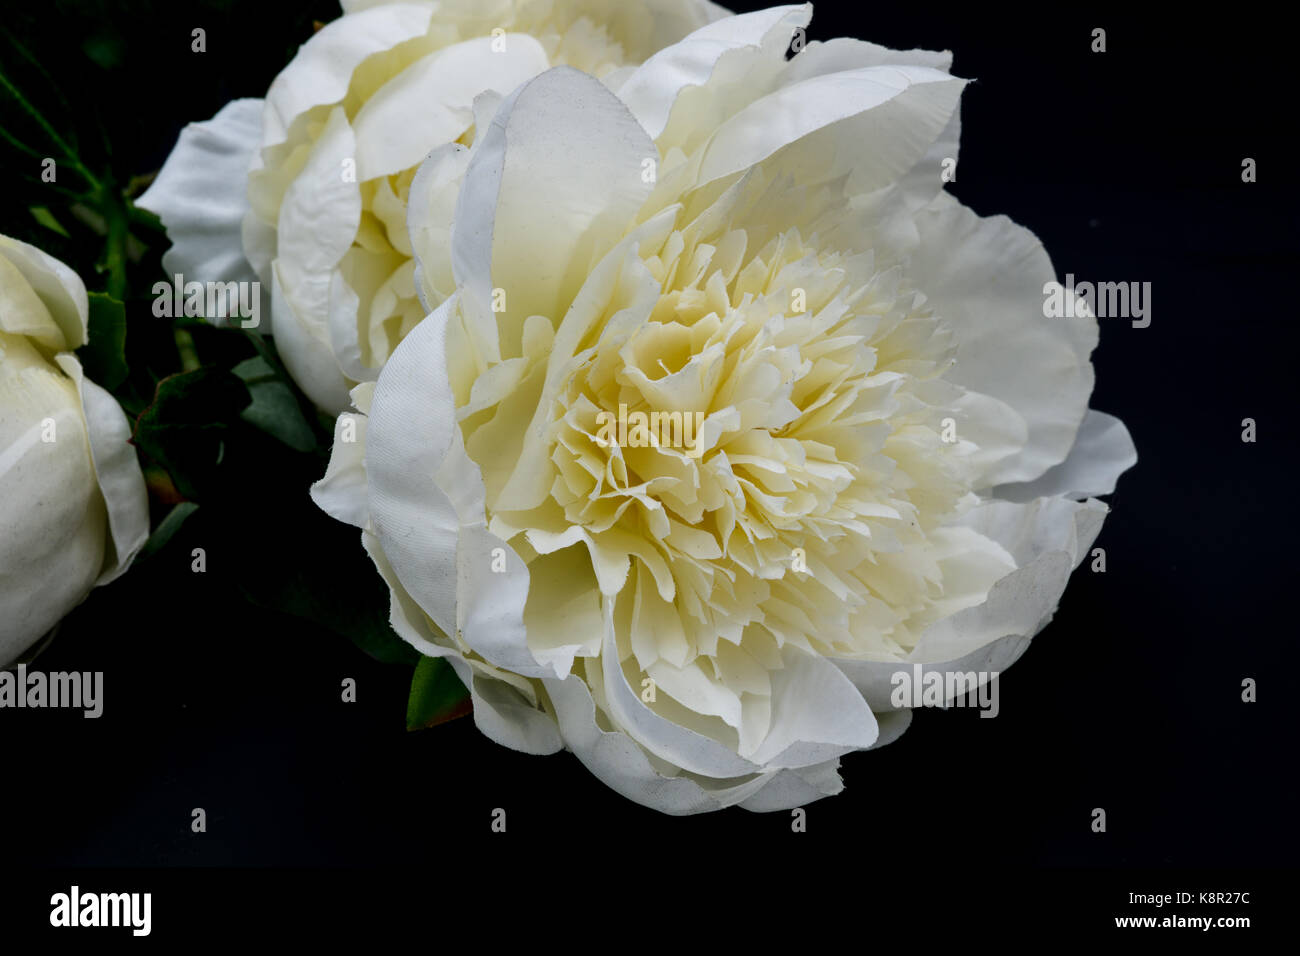 Big White Flower Petals Stock Photos Big White Flower Petals Stock